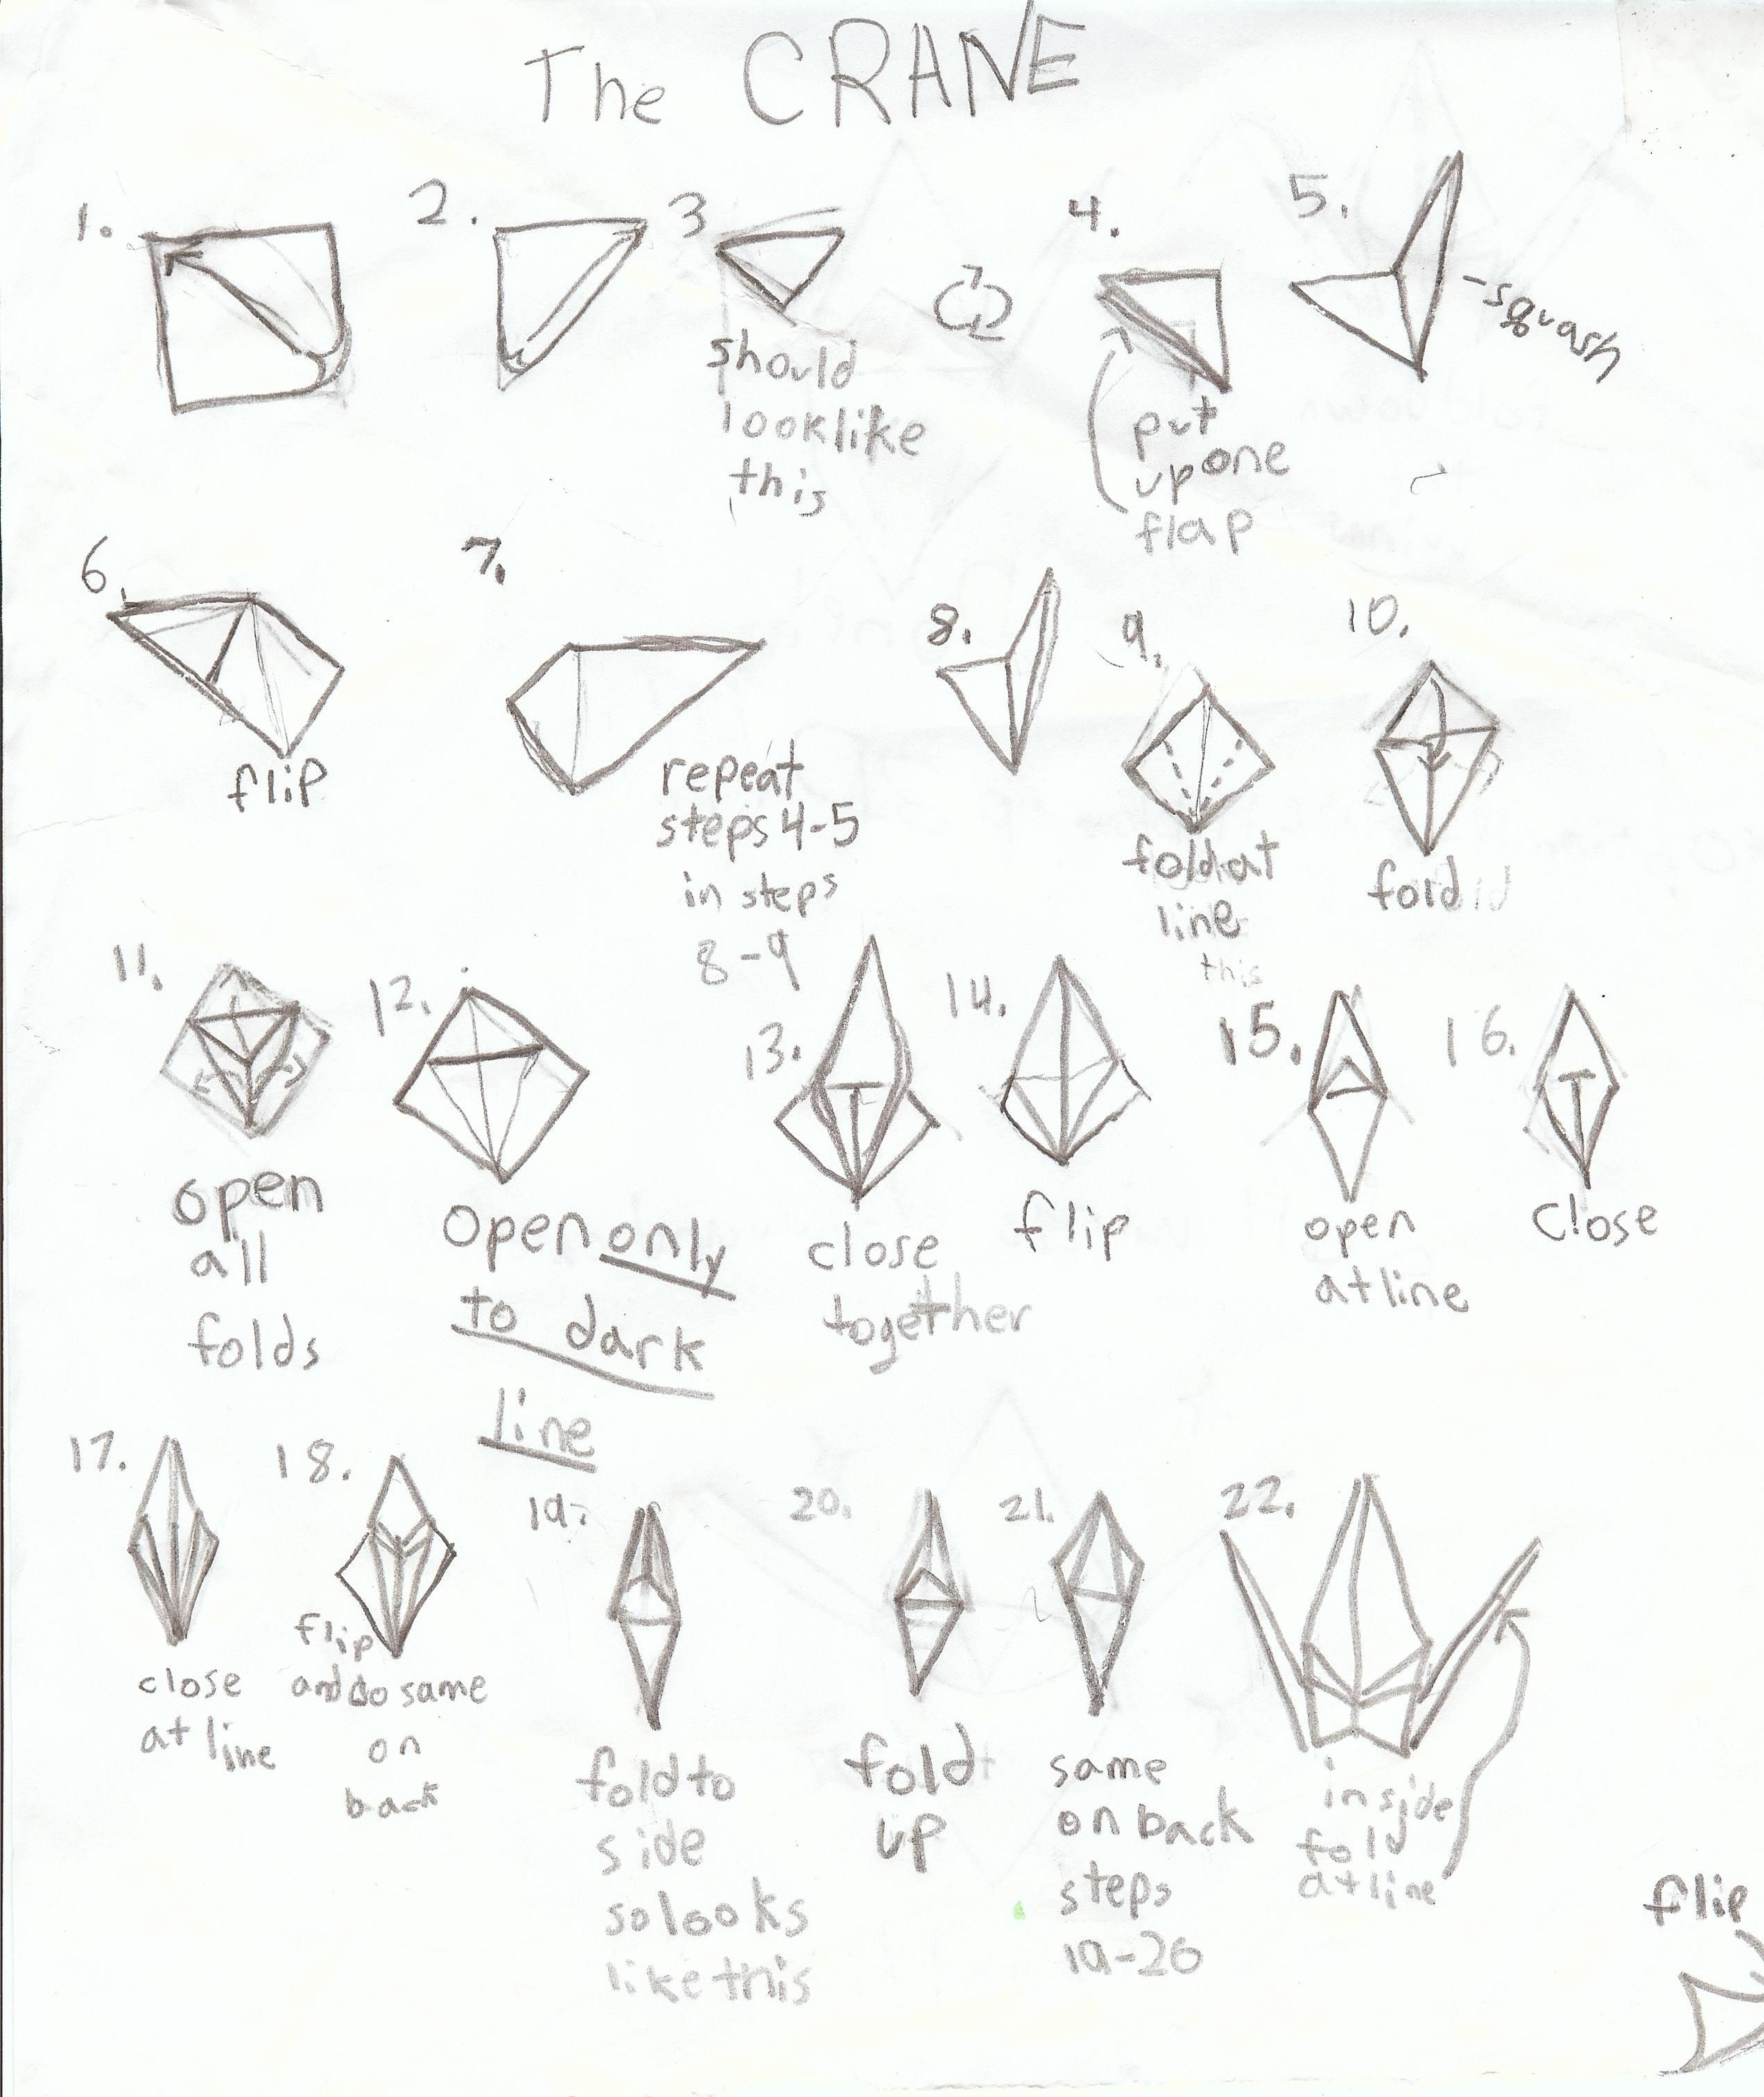 25 Origami Crane Step By Step Instructions Coloring Pages